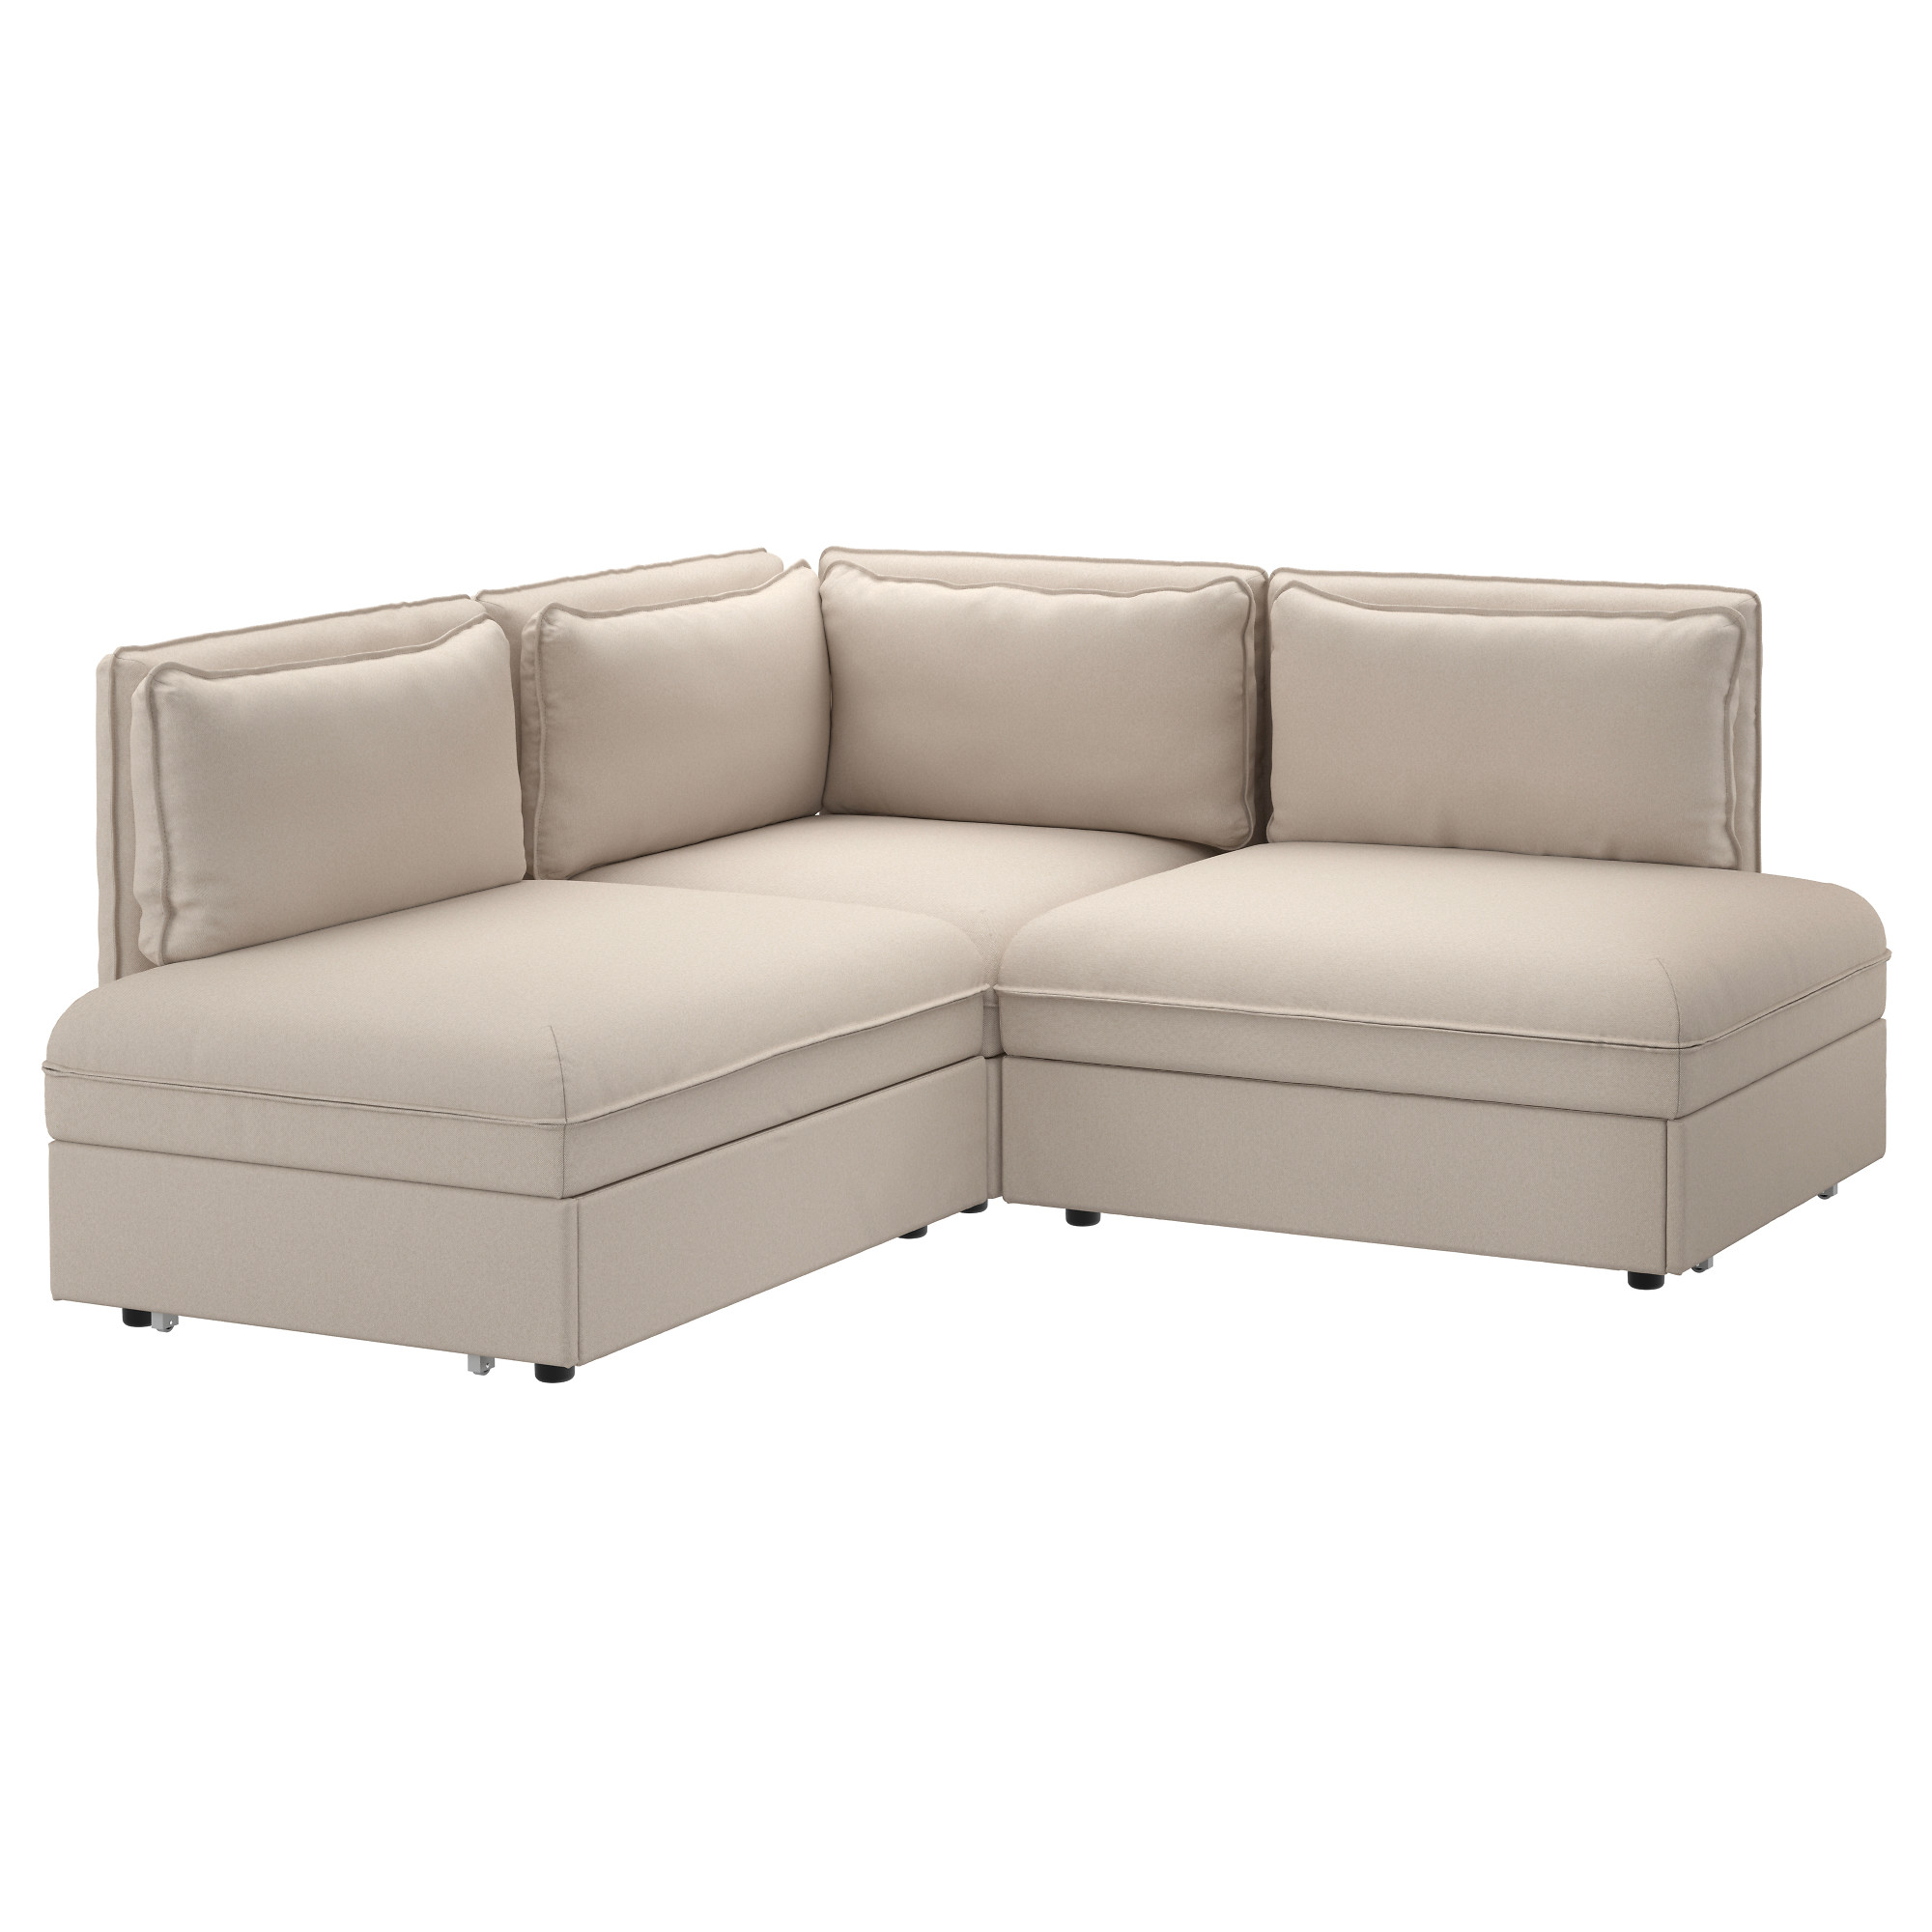 Sofa bed canada sofa beds canada thesofa thesofa for Sofa bed canada